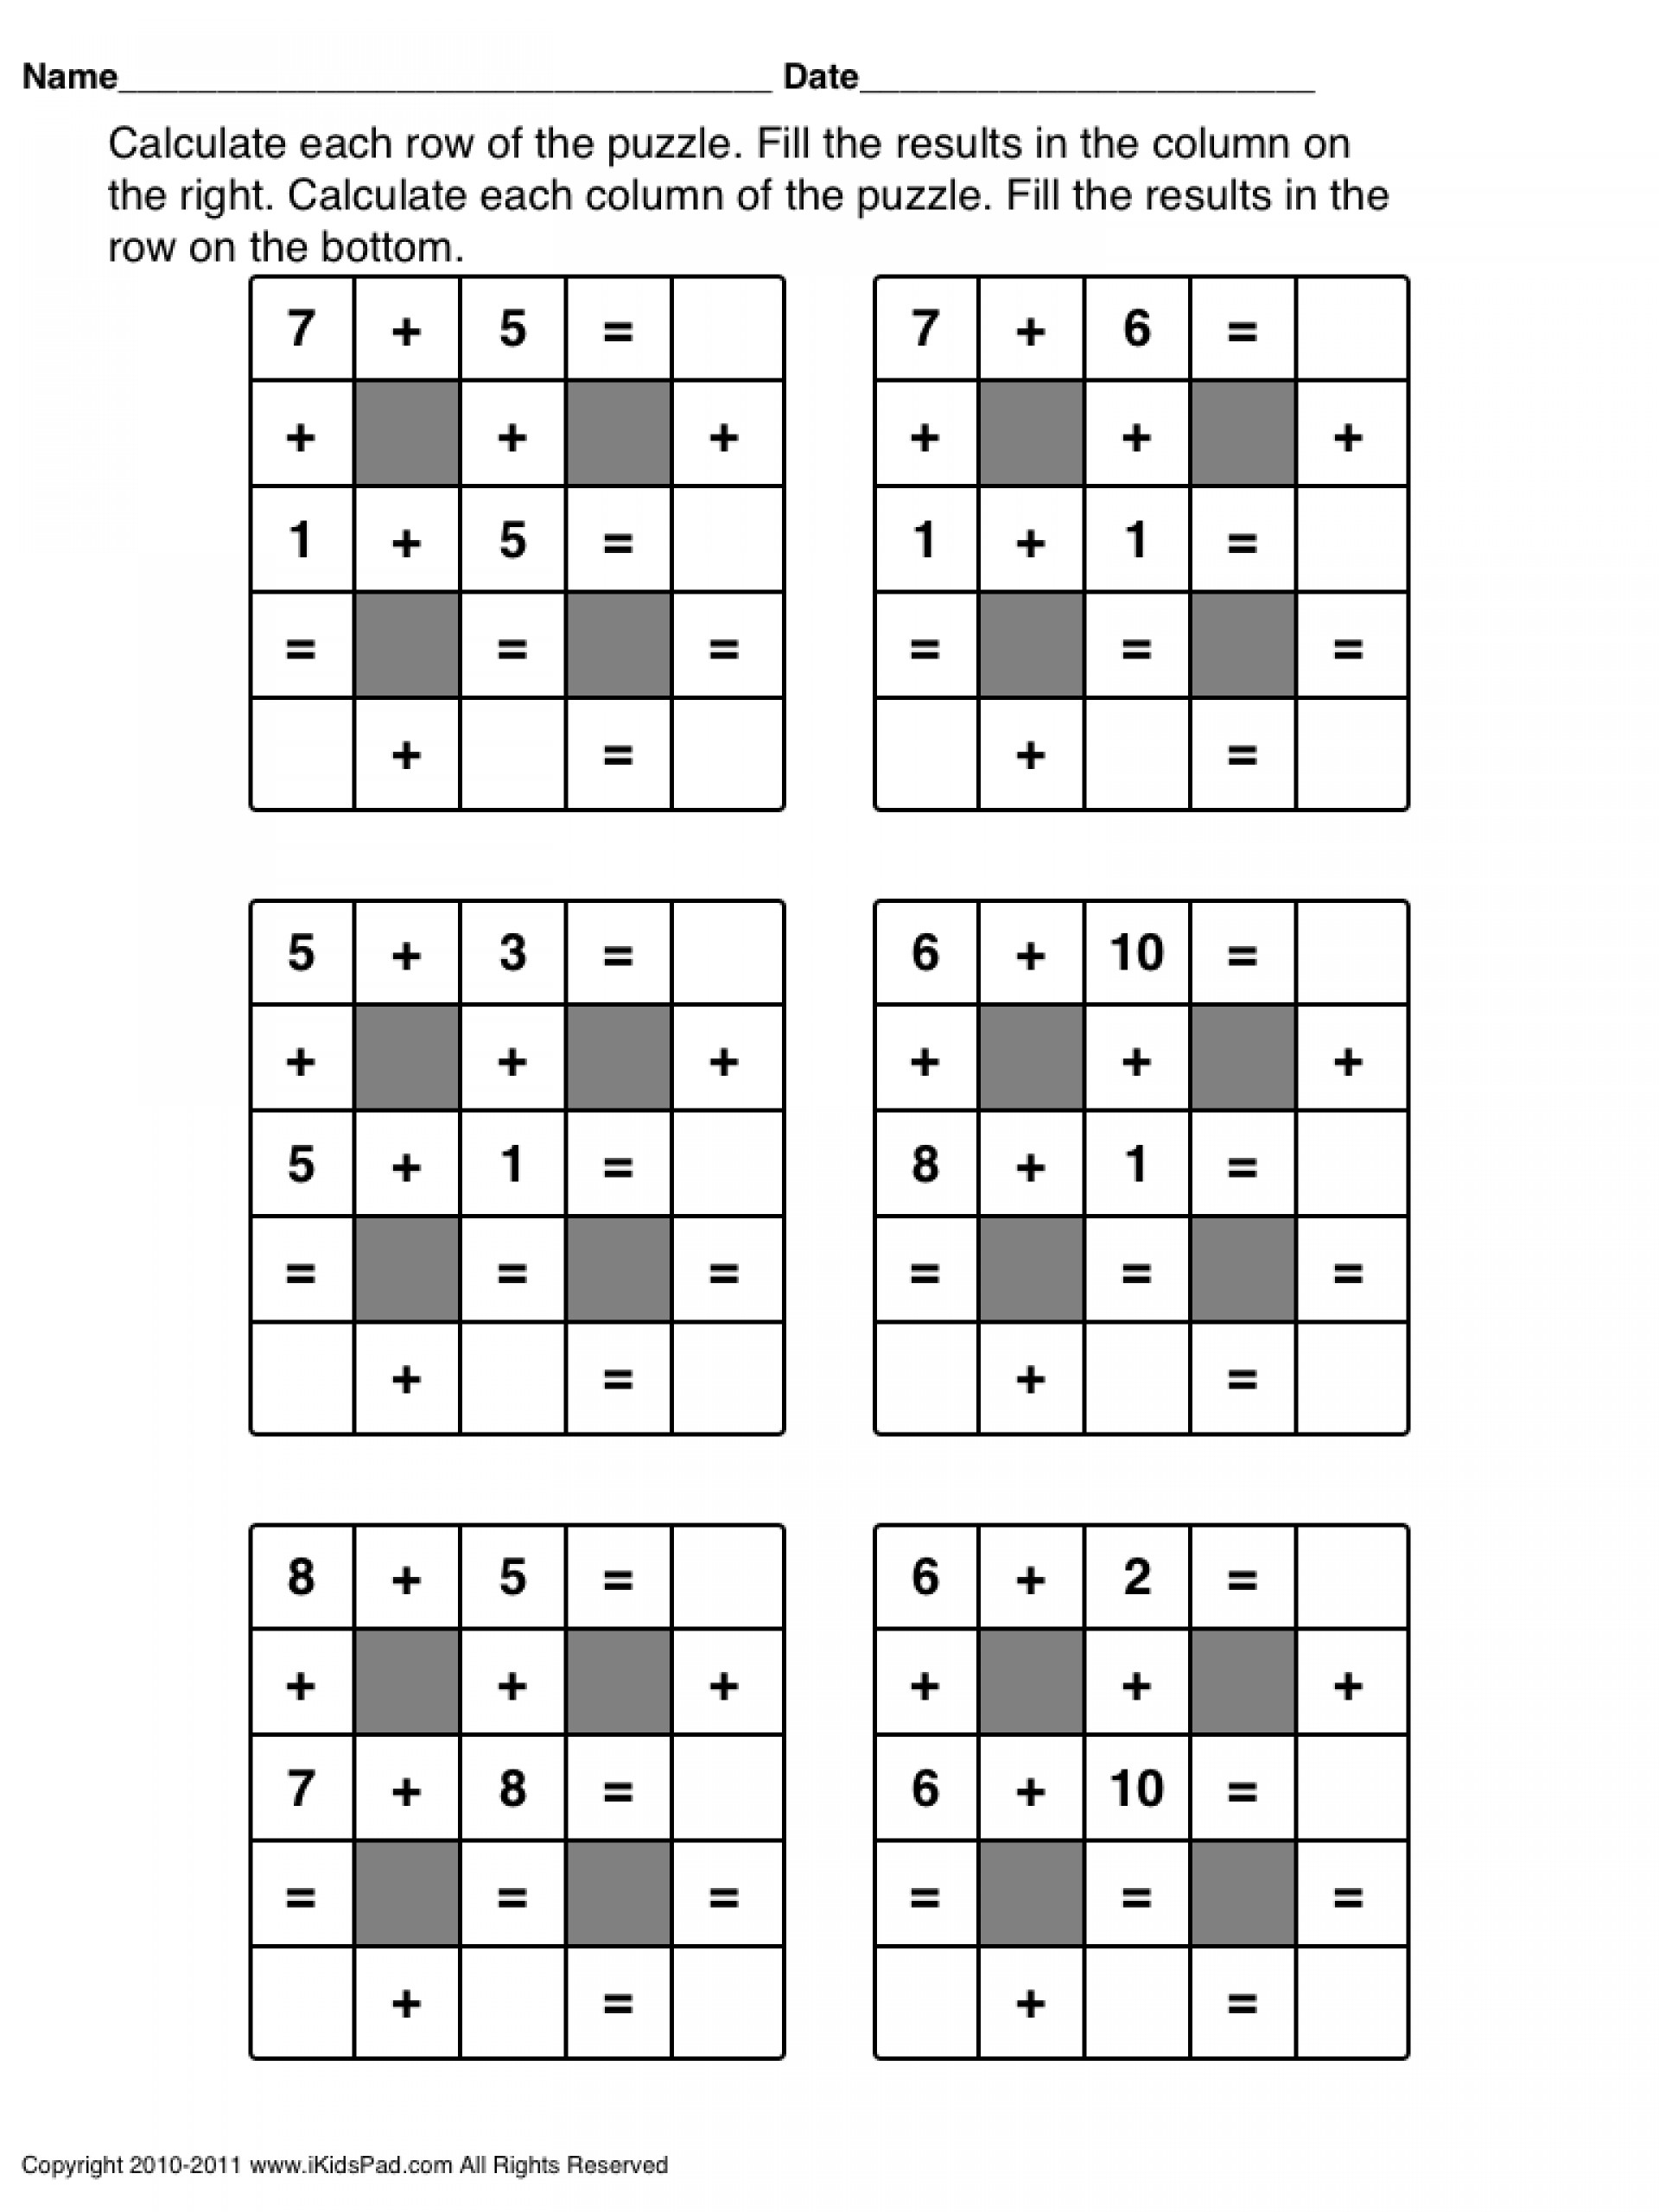 Crosswords Fun Maths For 2Nd And 3Rd Graders Free Printable Second - Free Printable Thanksgiving Math Worksheets For 3Rd Grade